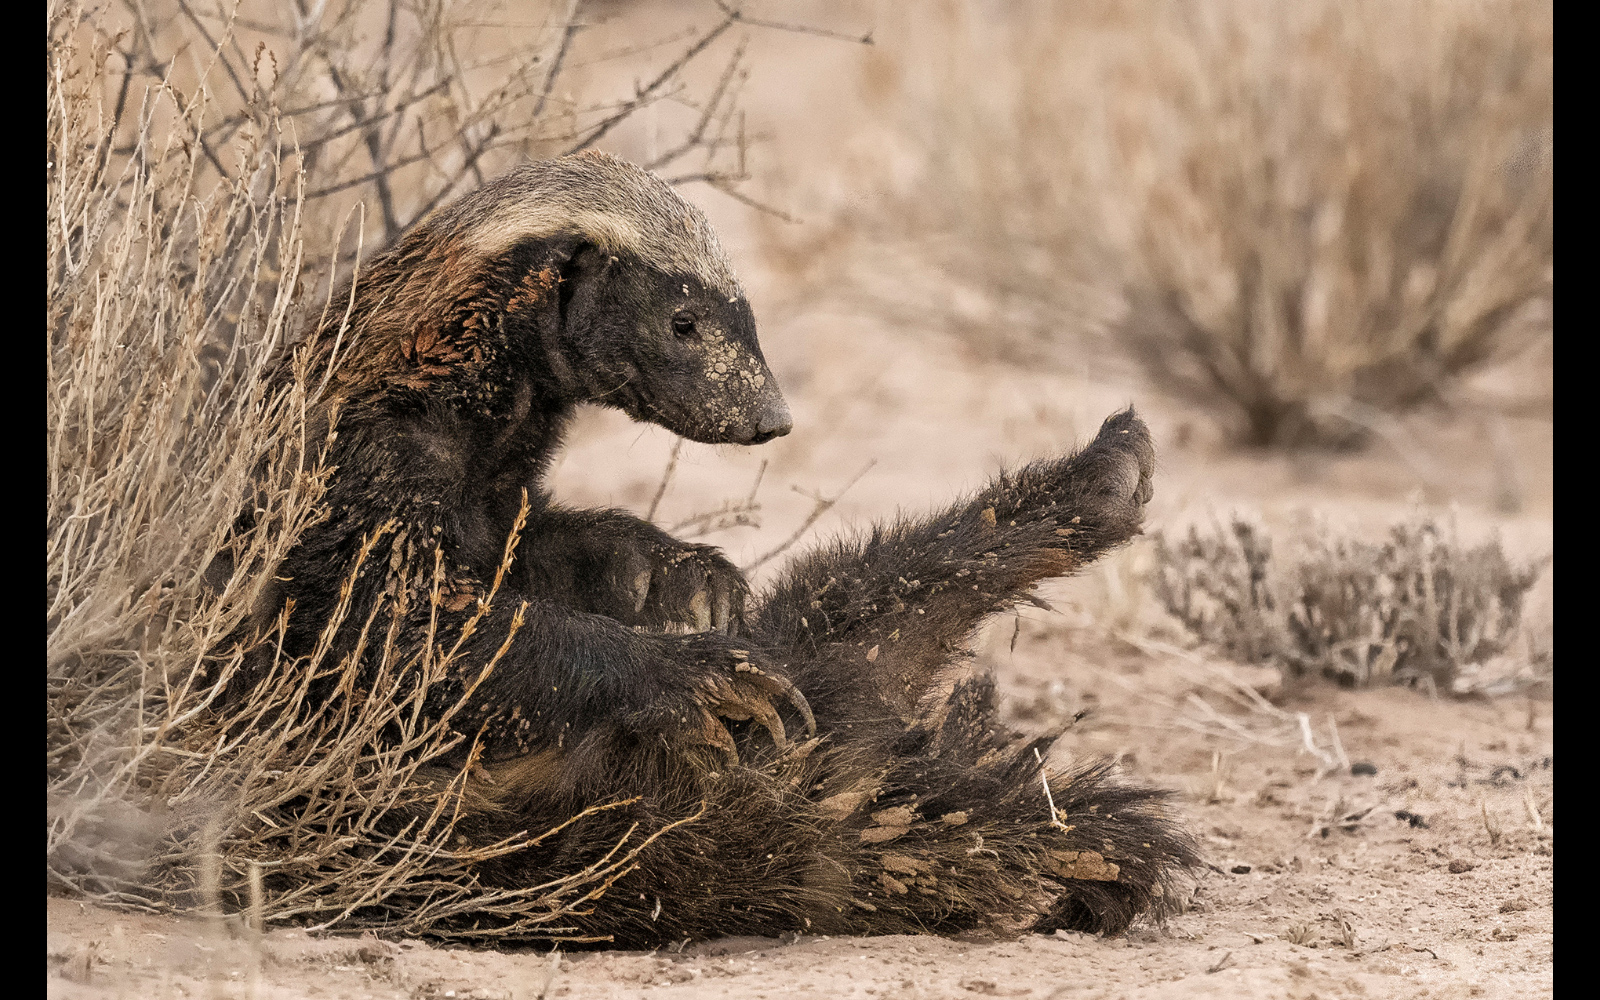 A honey badger cleans up after a mud bath in Kgalagadi Transfrontier Park, South Africa © Johan J. Botha (Photographer of the Year 2018 Semi-finalist)